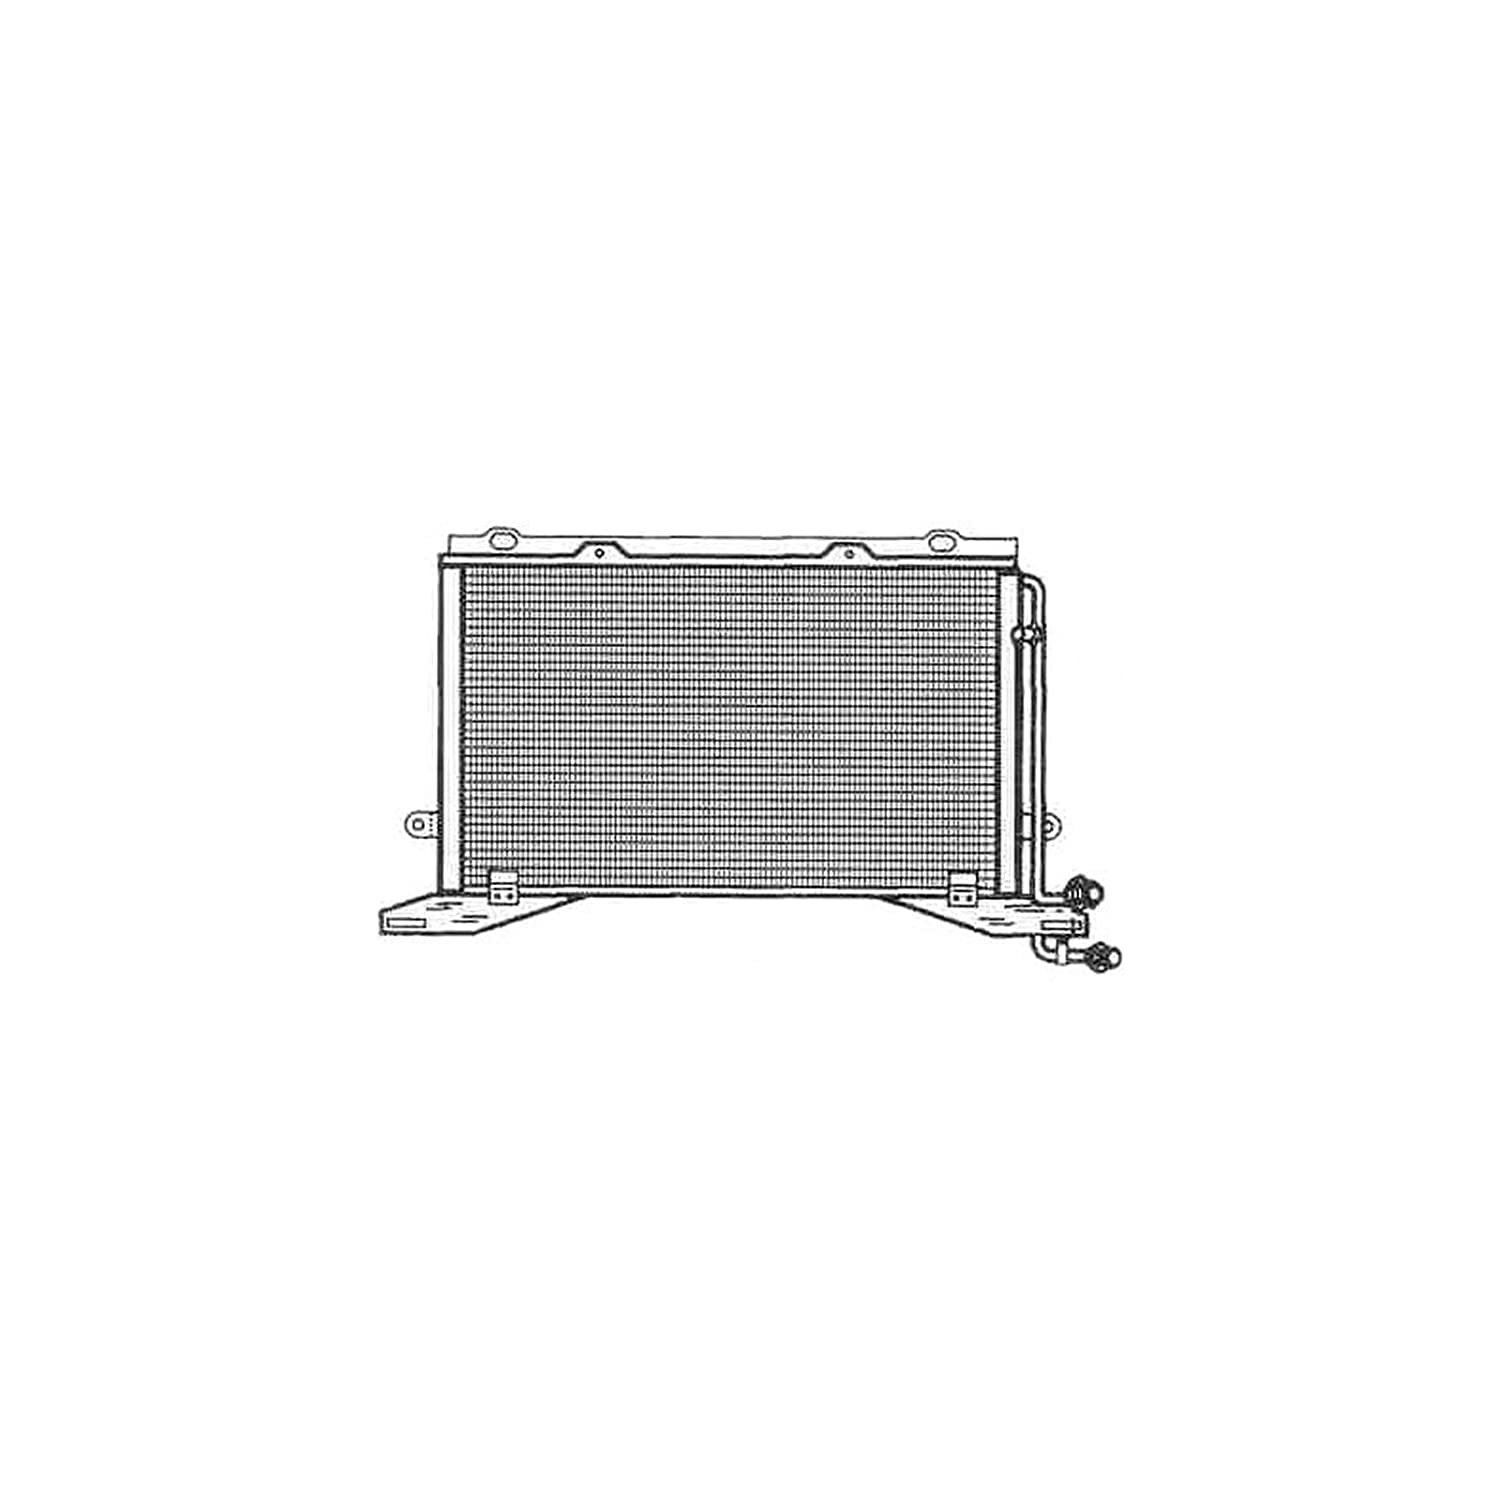 Delphi TSP0225330 Air Conditioning Component